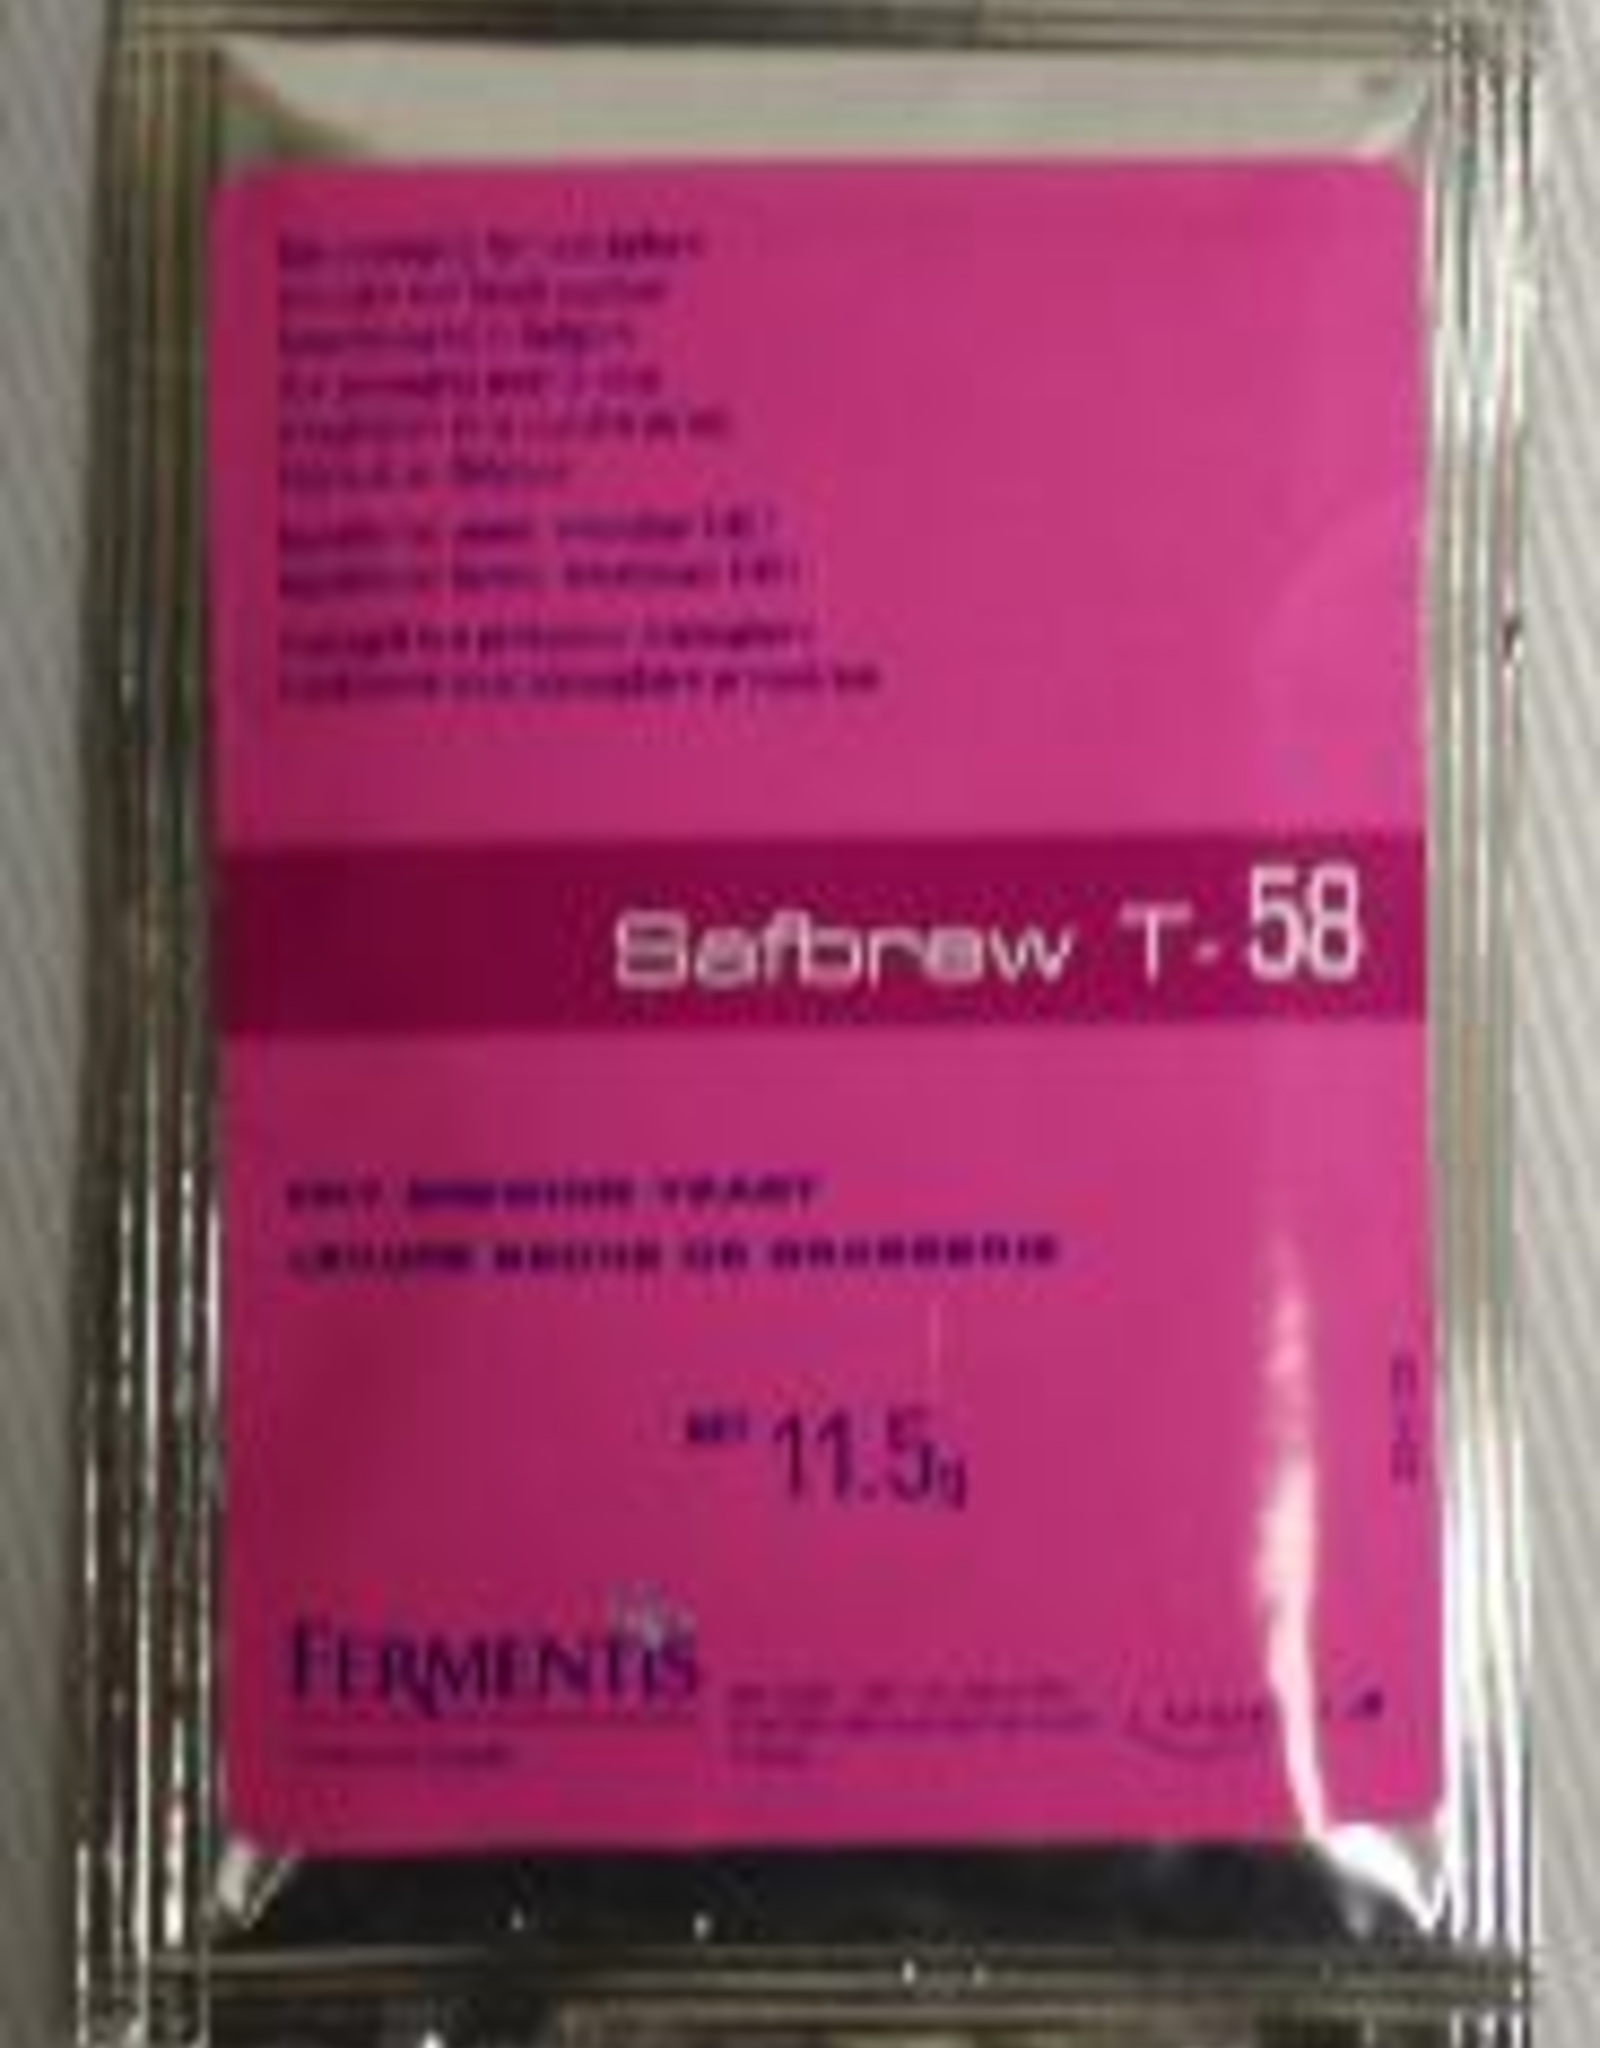 SAFALE T-58 DRY BREWING YEAST 11 G